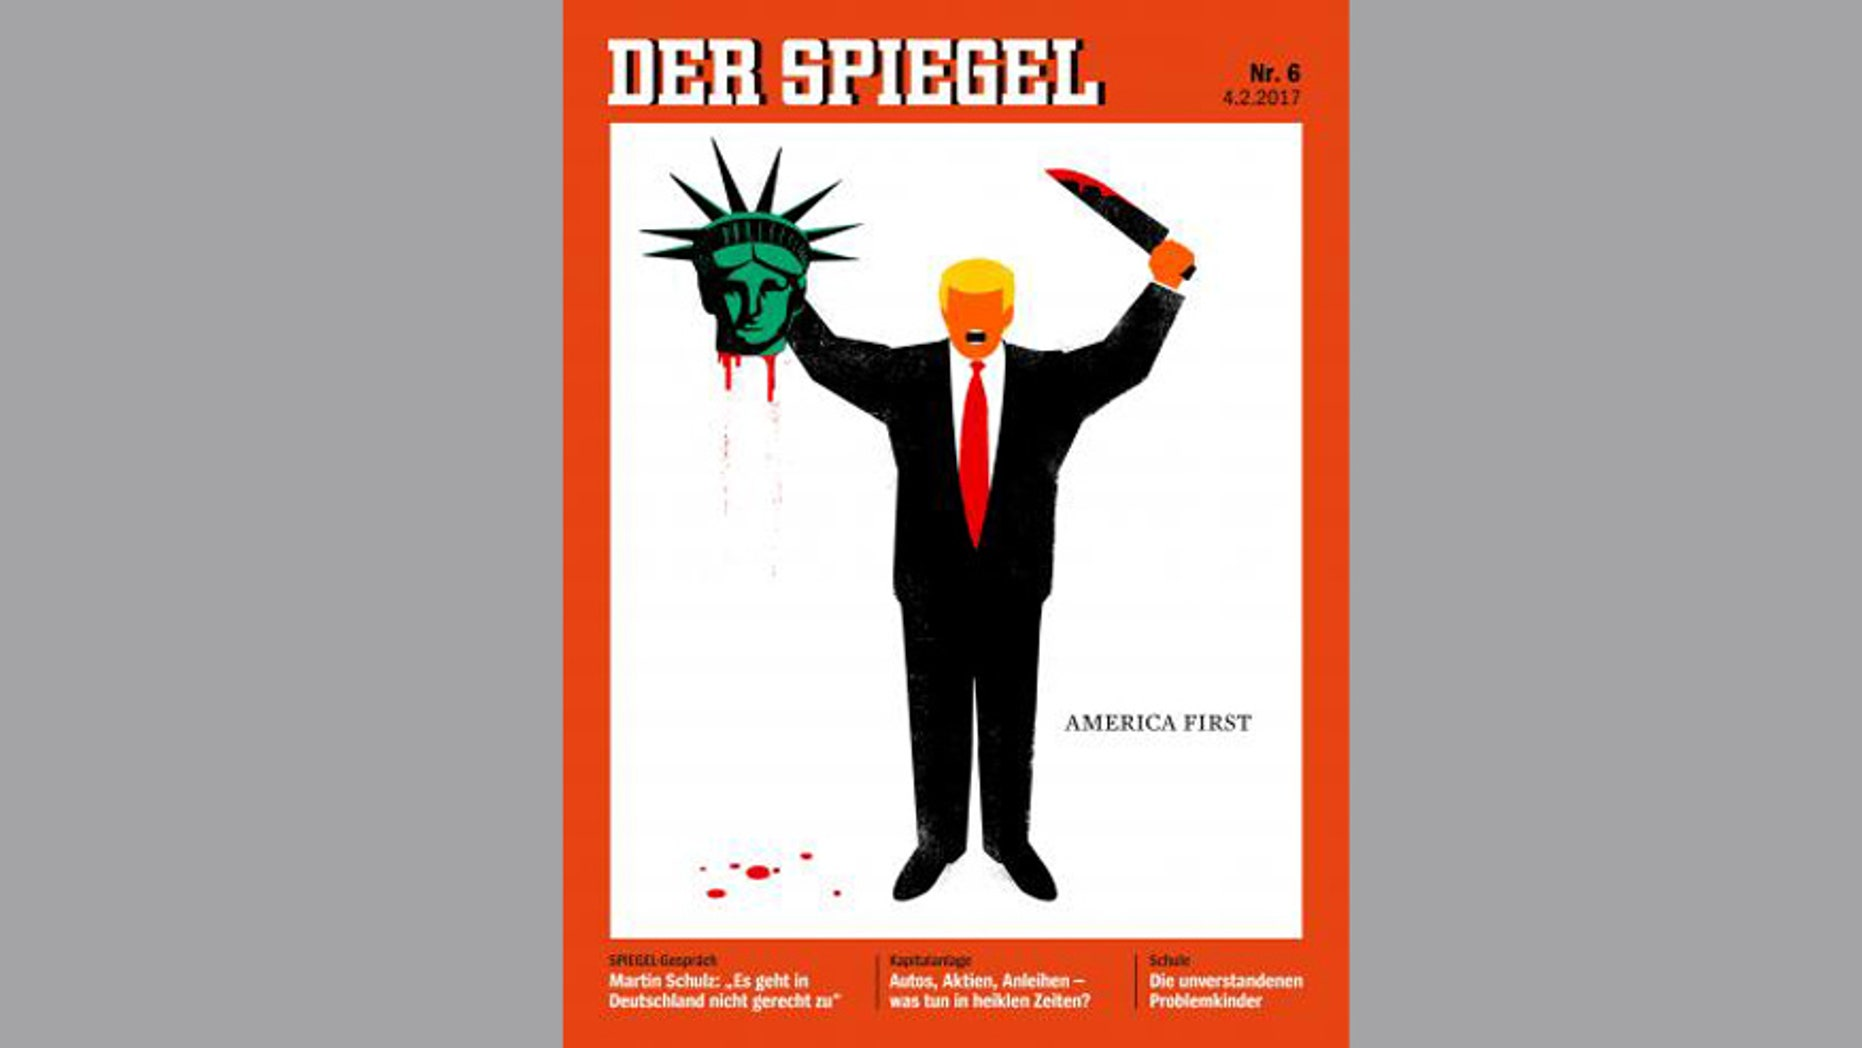 This Der Spiegel cover has sparked controversy in Germany and elsewhere.